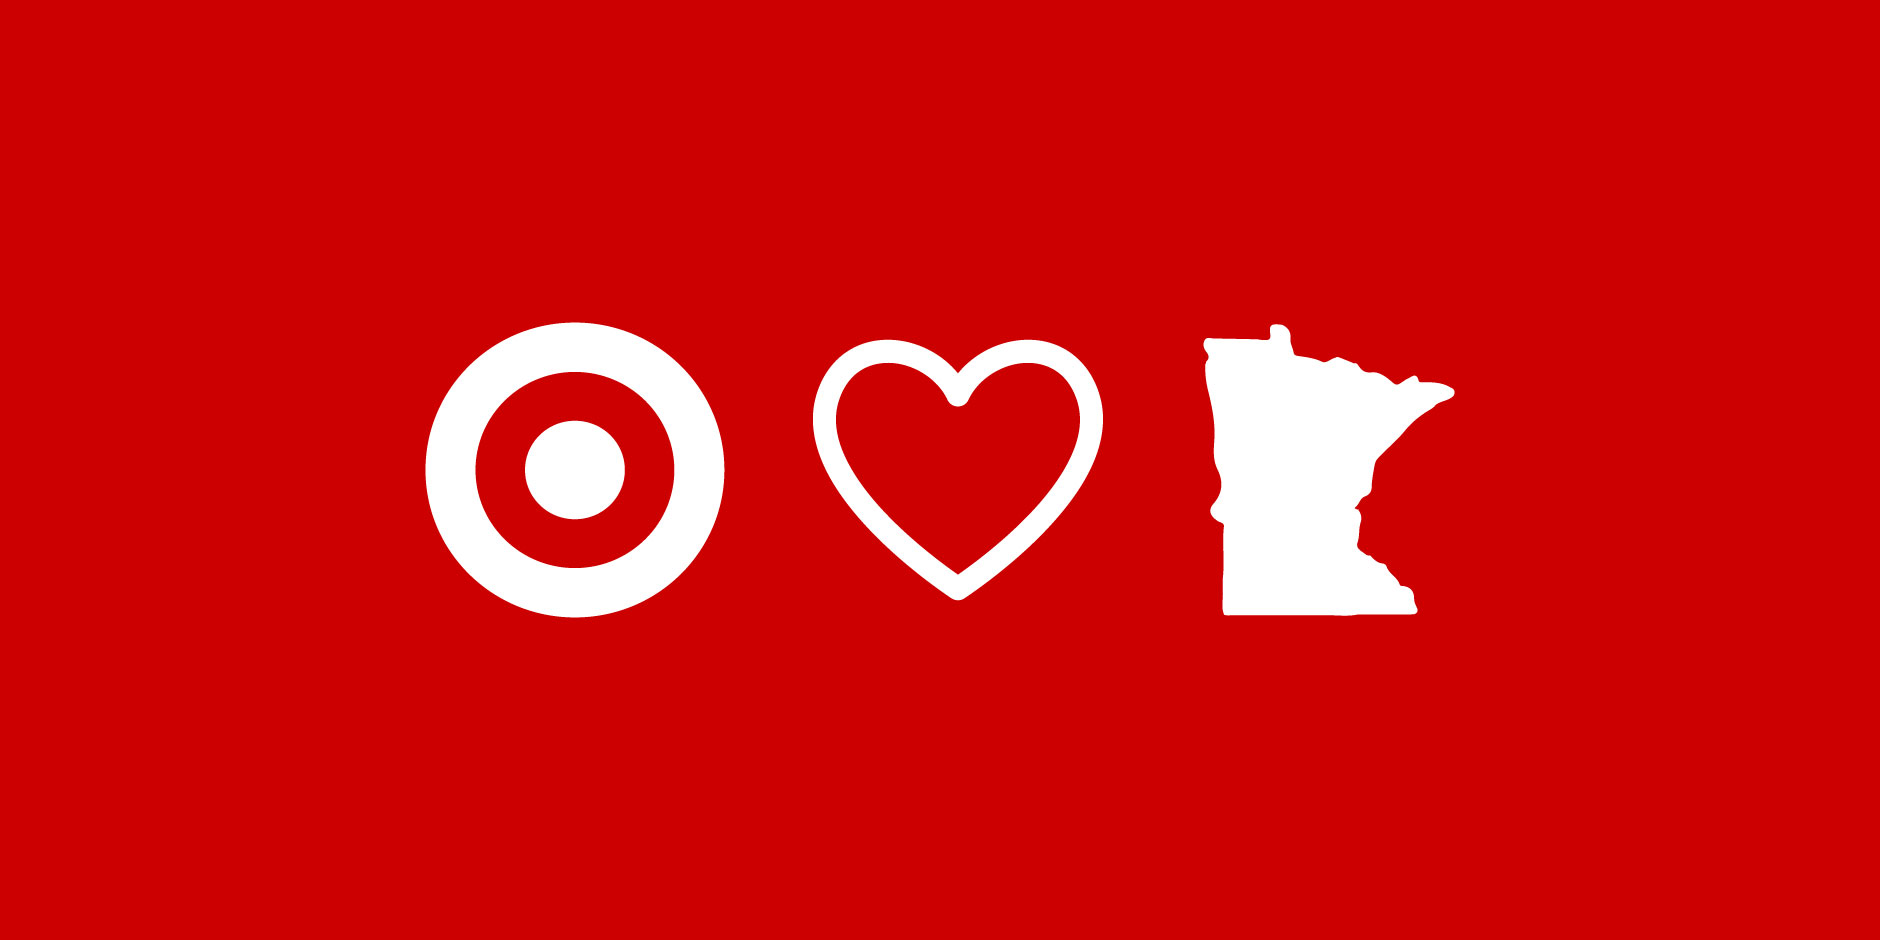 A white Bullseye logo, the outline of a heart and the state of Minnesota against a red background